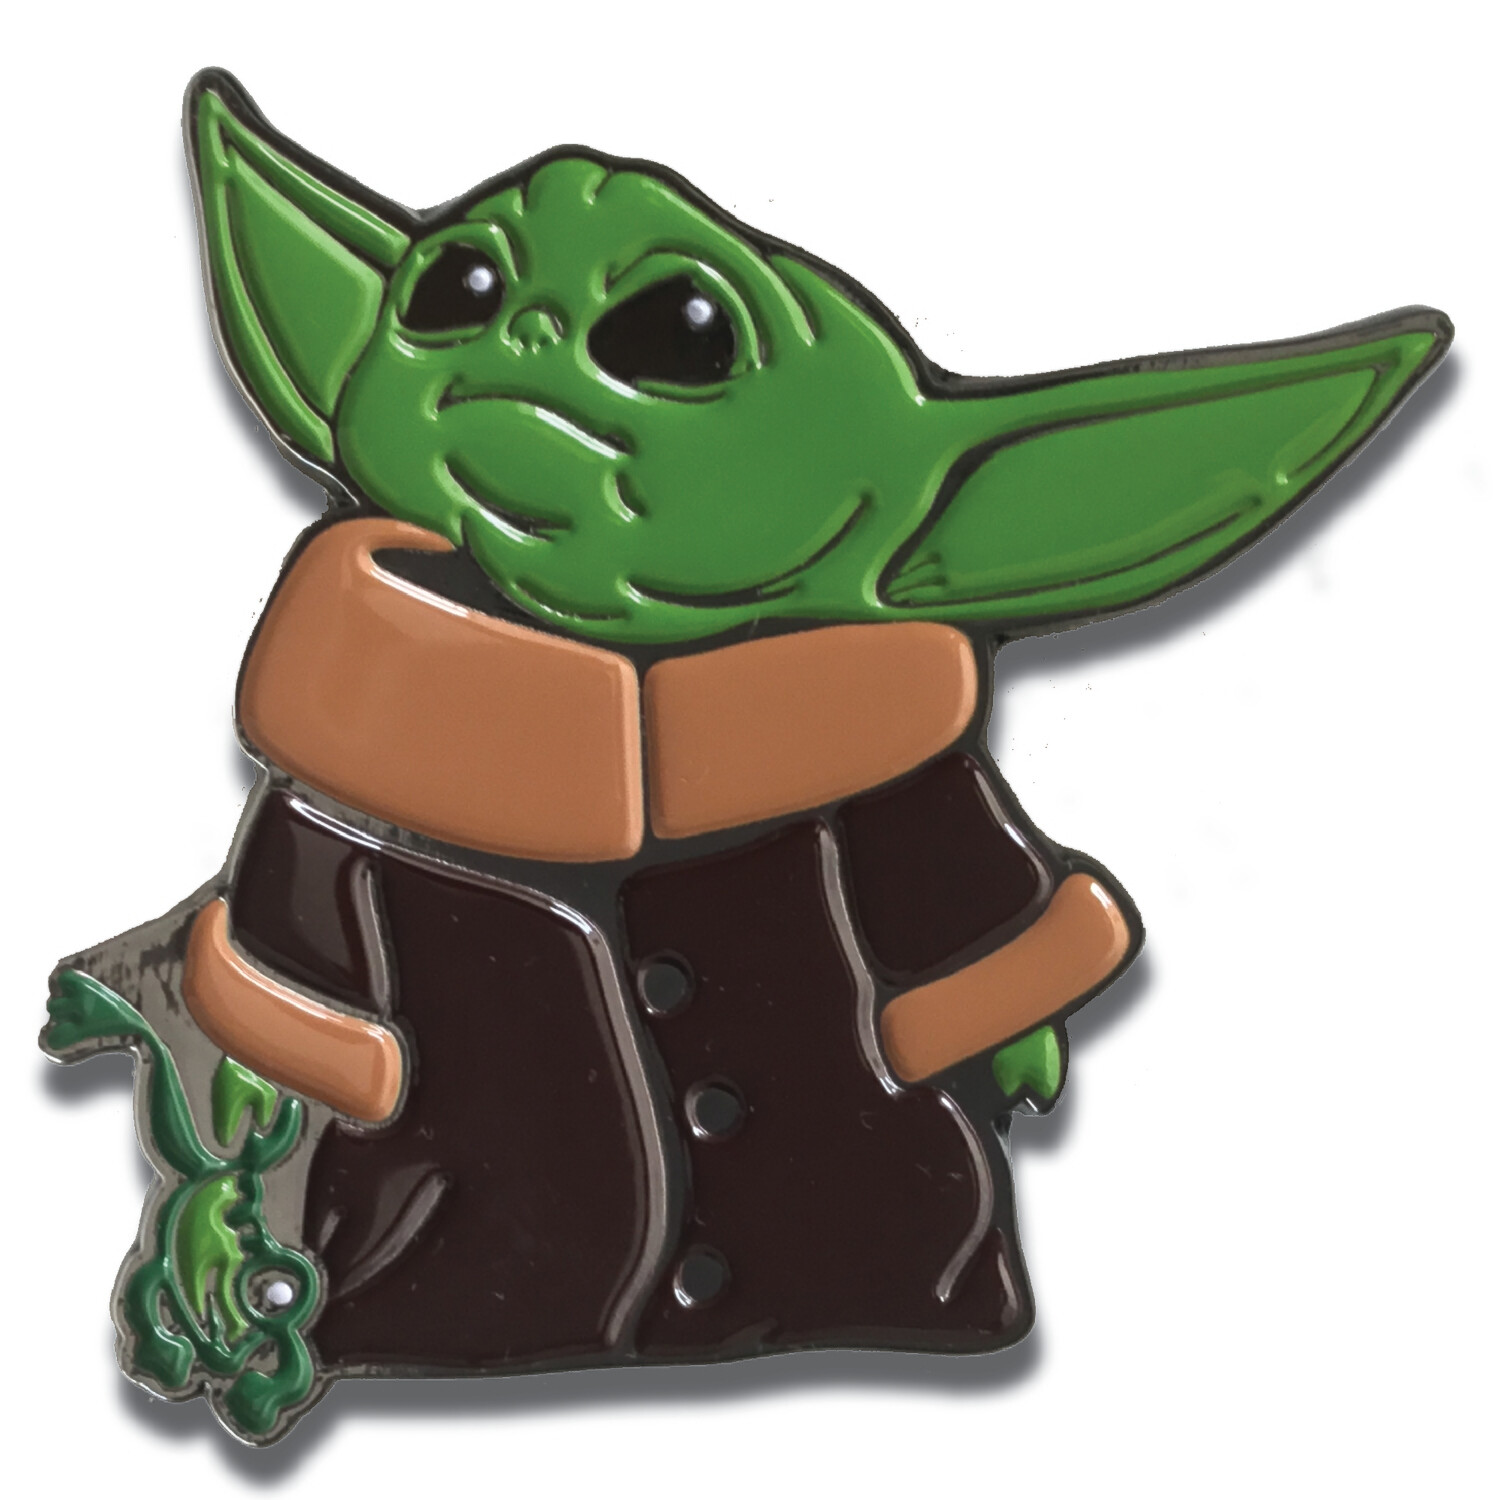 "MyPrintOn Baby Yoda 2"" with Frog Soft Enamel Nickle Plated Pin The Child Character from The Star Wars Disney Television Series The Mandalorian Too Cute I Am"